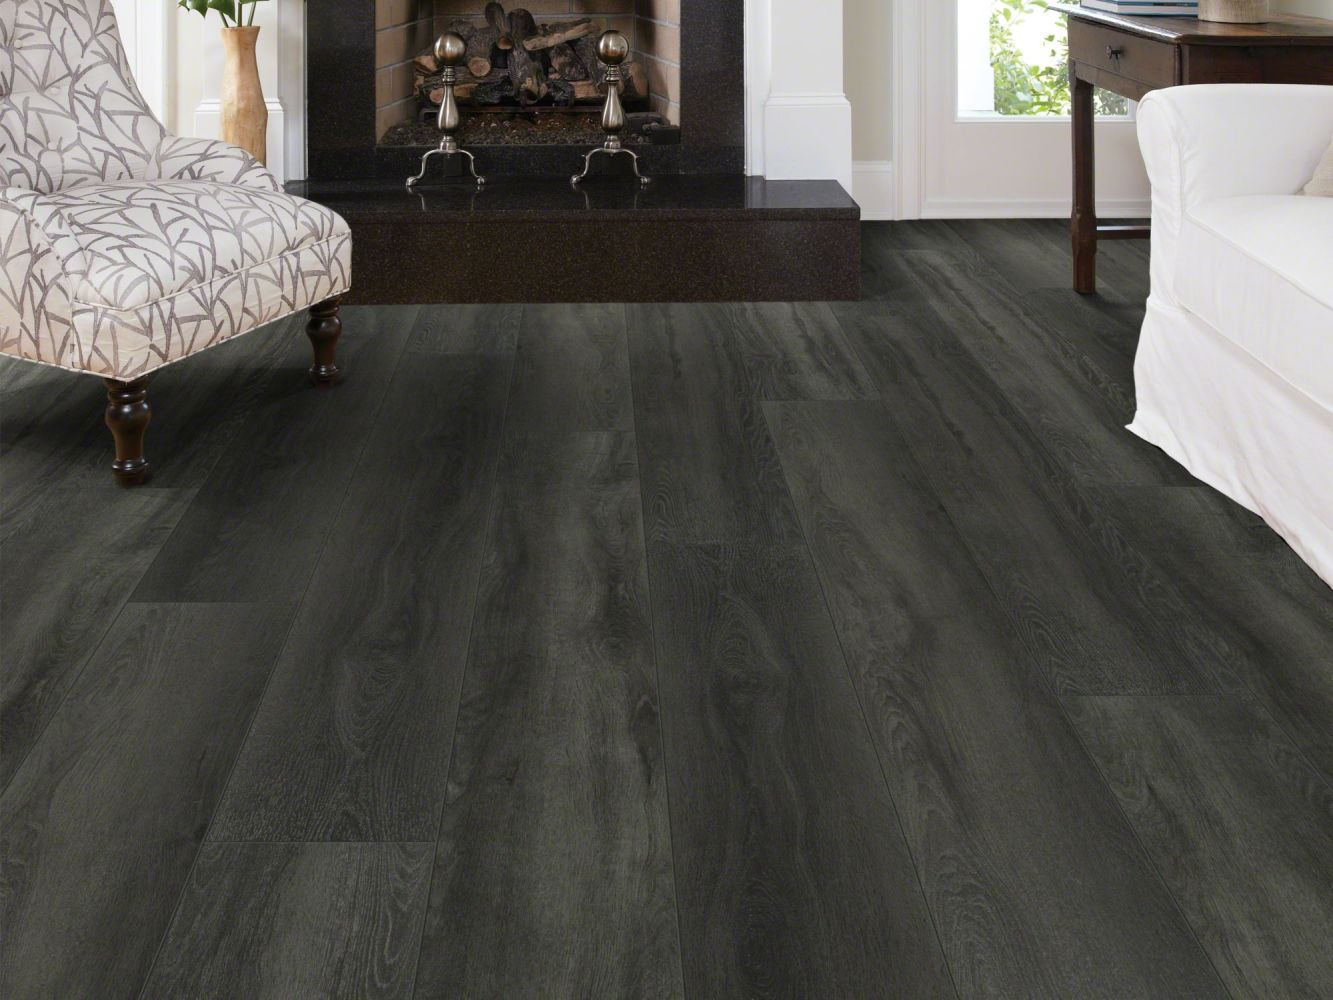 Shaw Floors Resilient Residential Titan HD Plus Guardian Oak 00907_2002V